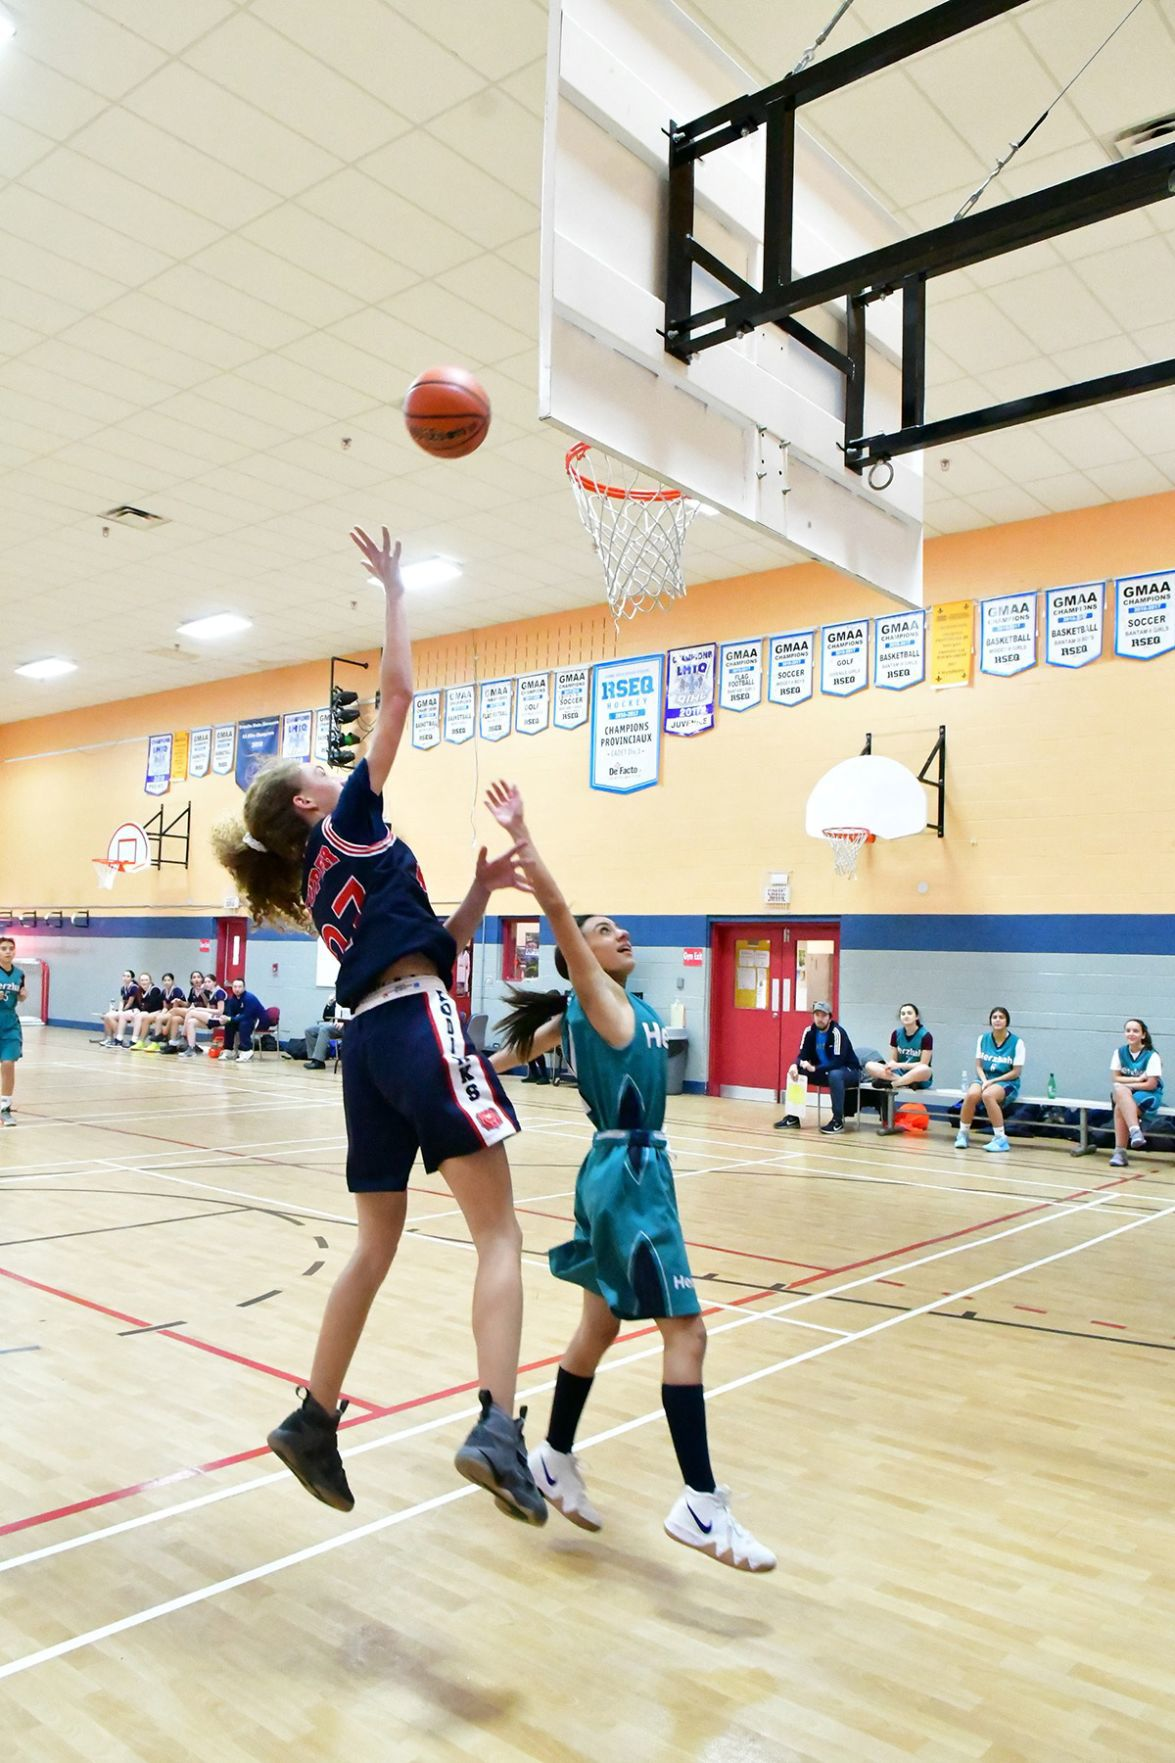 Kuper clinches undefeated season with 53-37 win over Herzliah